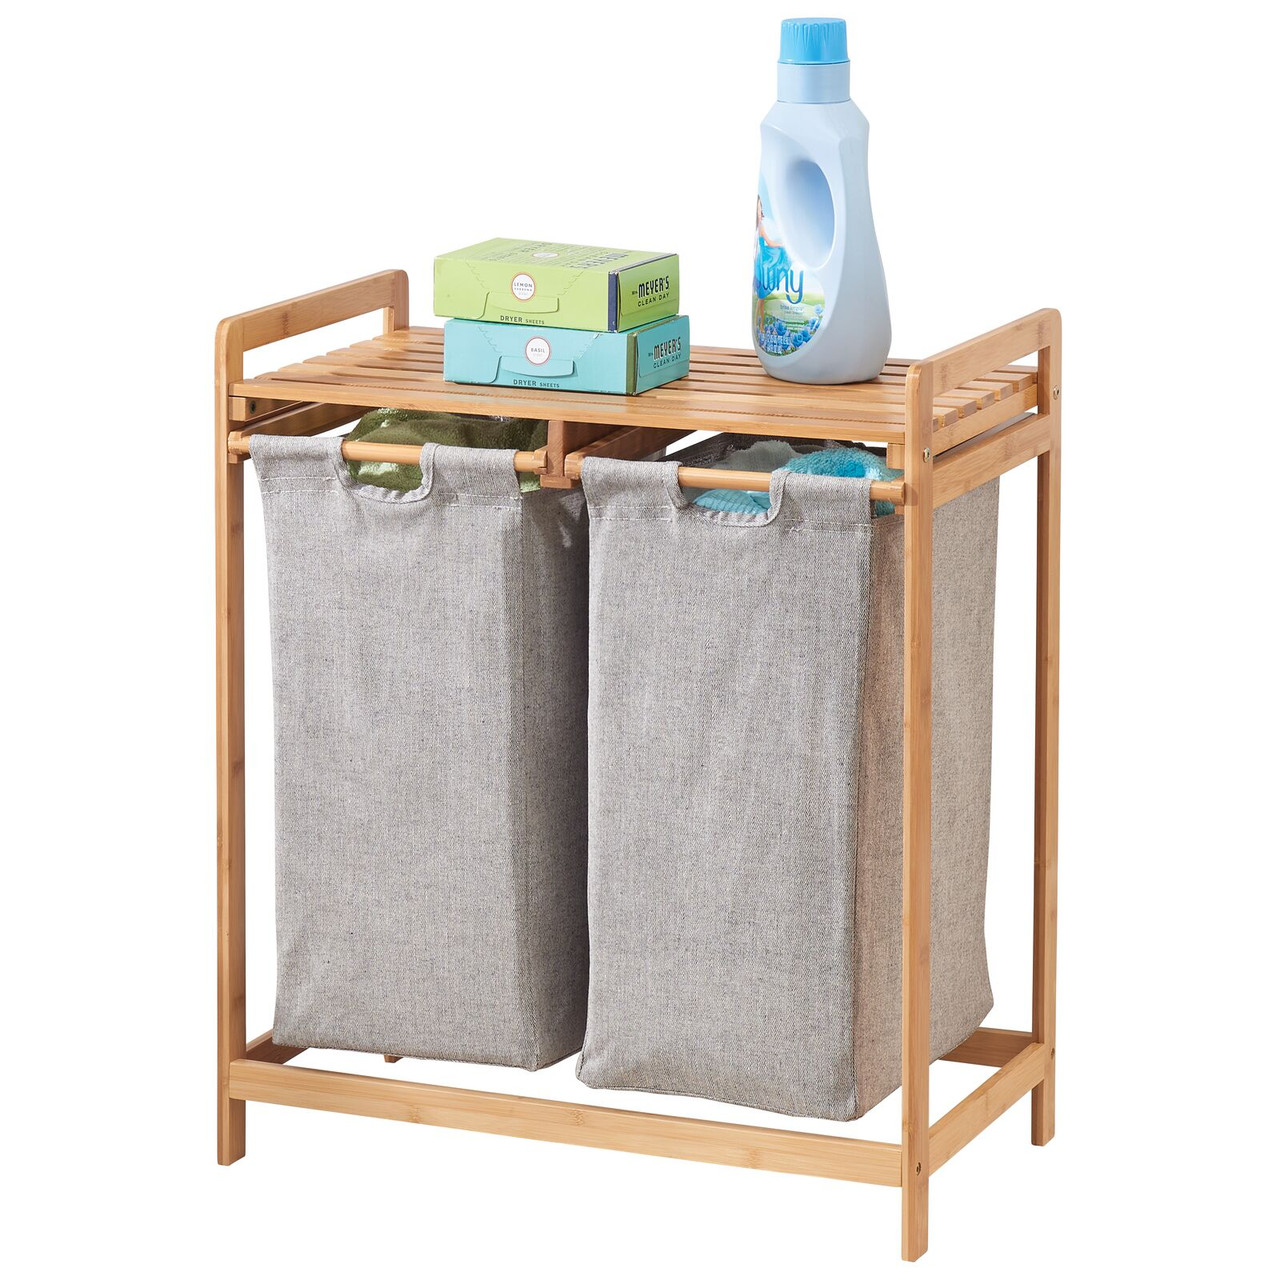 Natural Bamboo mDesign Bamboo Single Hamper Basket with Removable Liner